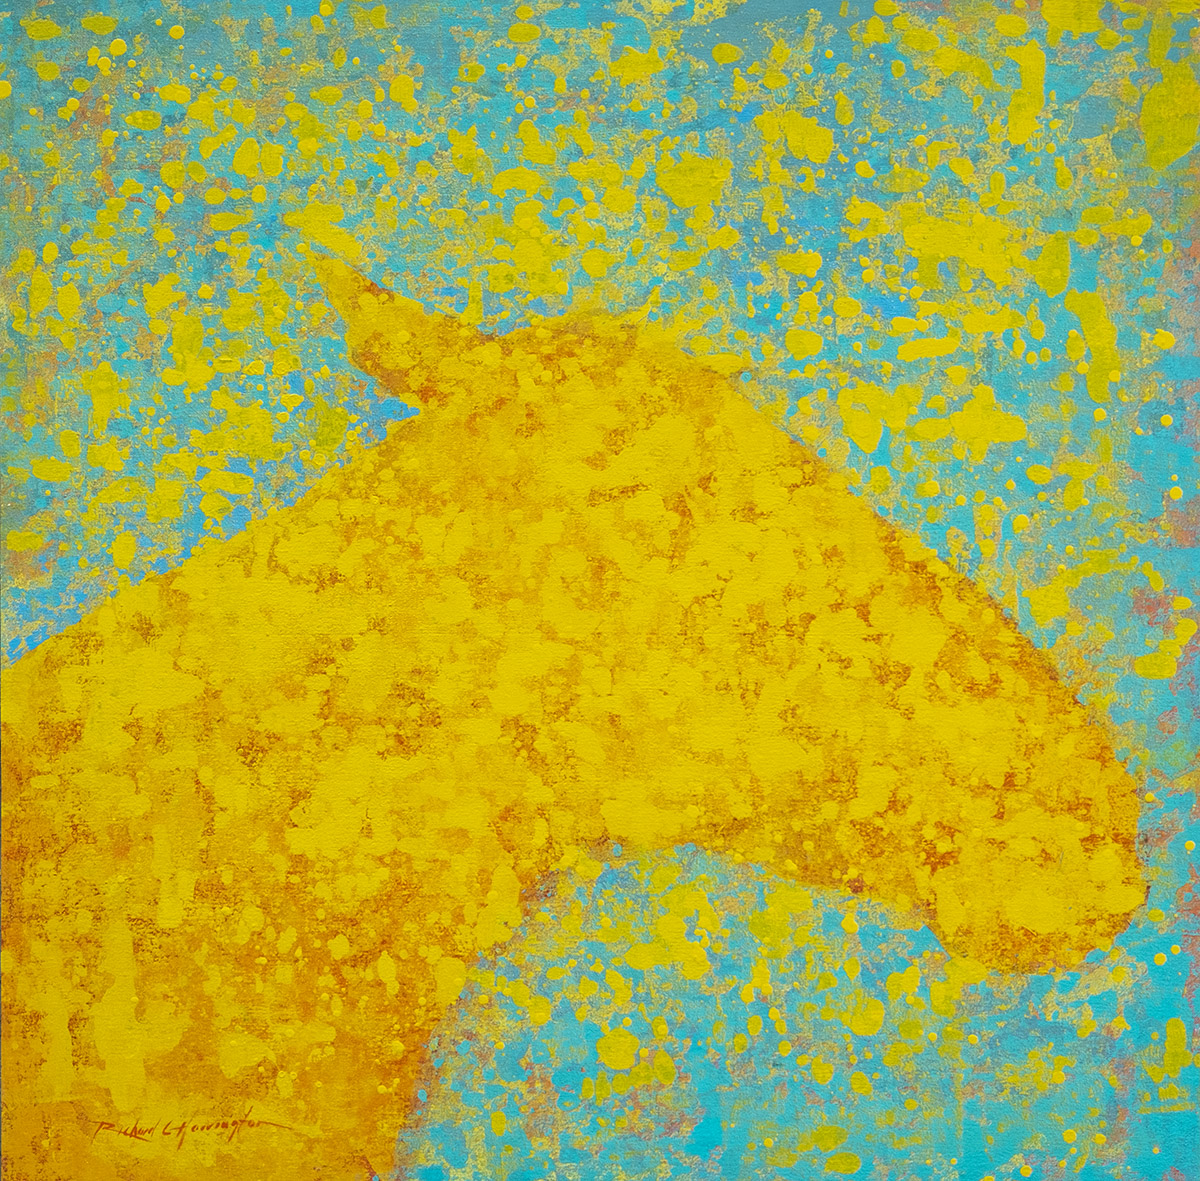 Yellow Dapple, 34 x 34, acrylic on panel. Available through artist